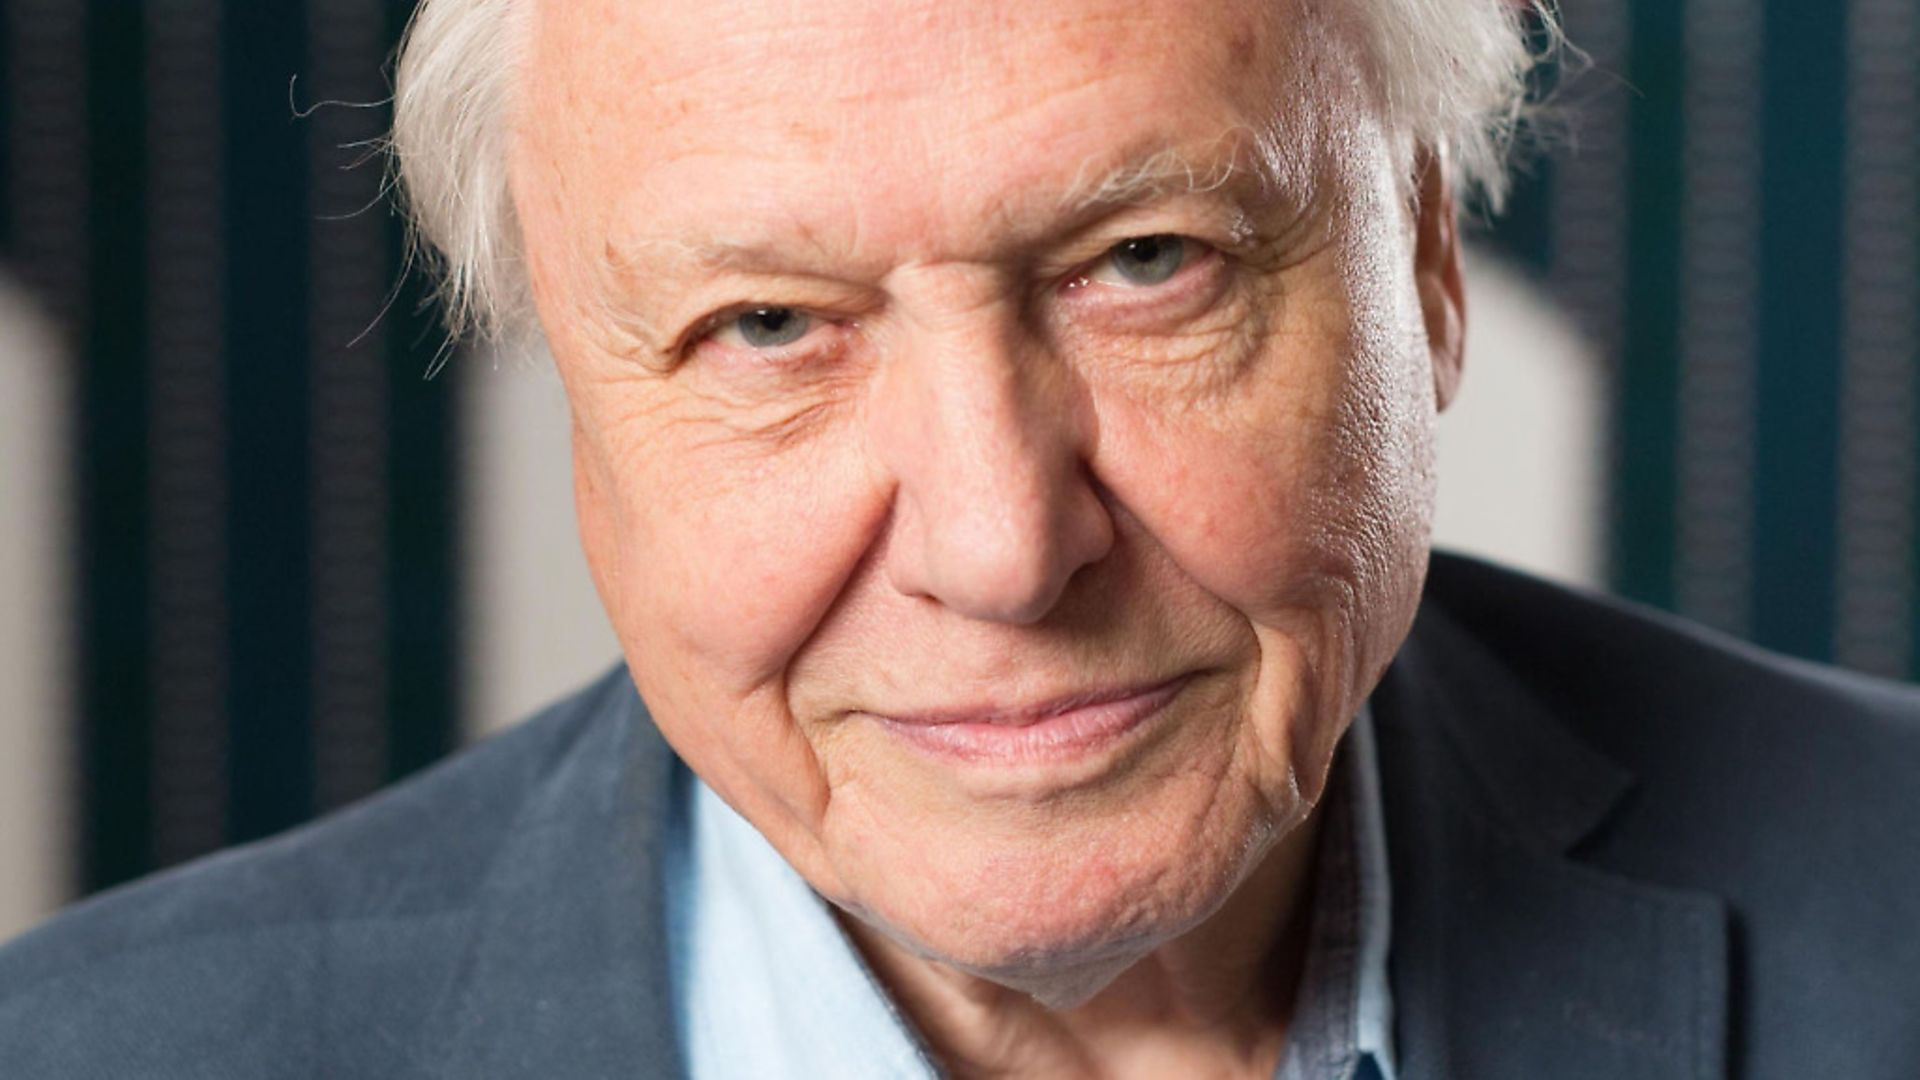 Sir David Attenborough as been told to desist from making any more disparaging comments about Brexit - Credit: PA Wire/PA Images